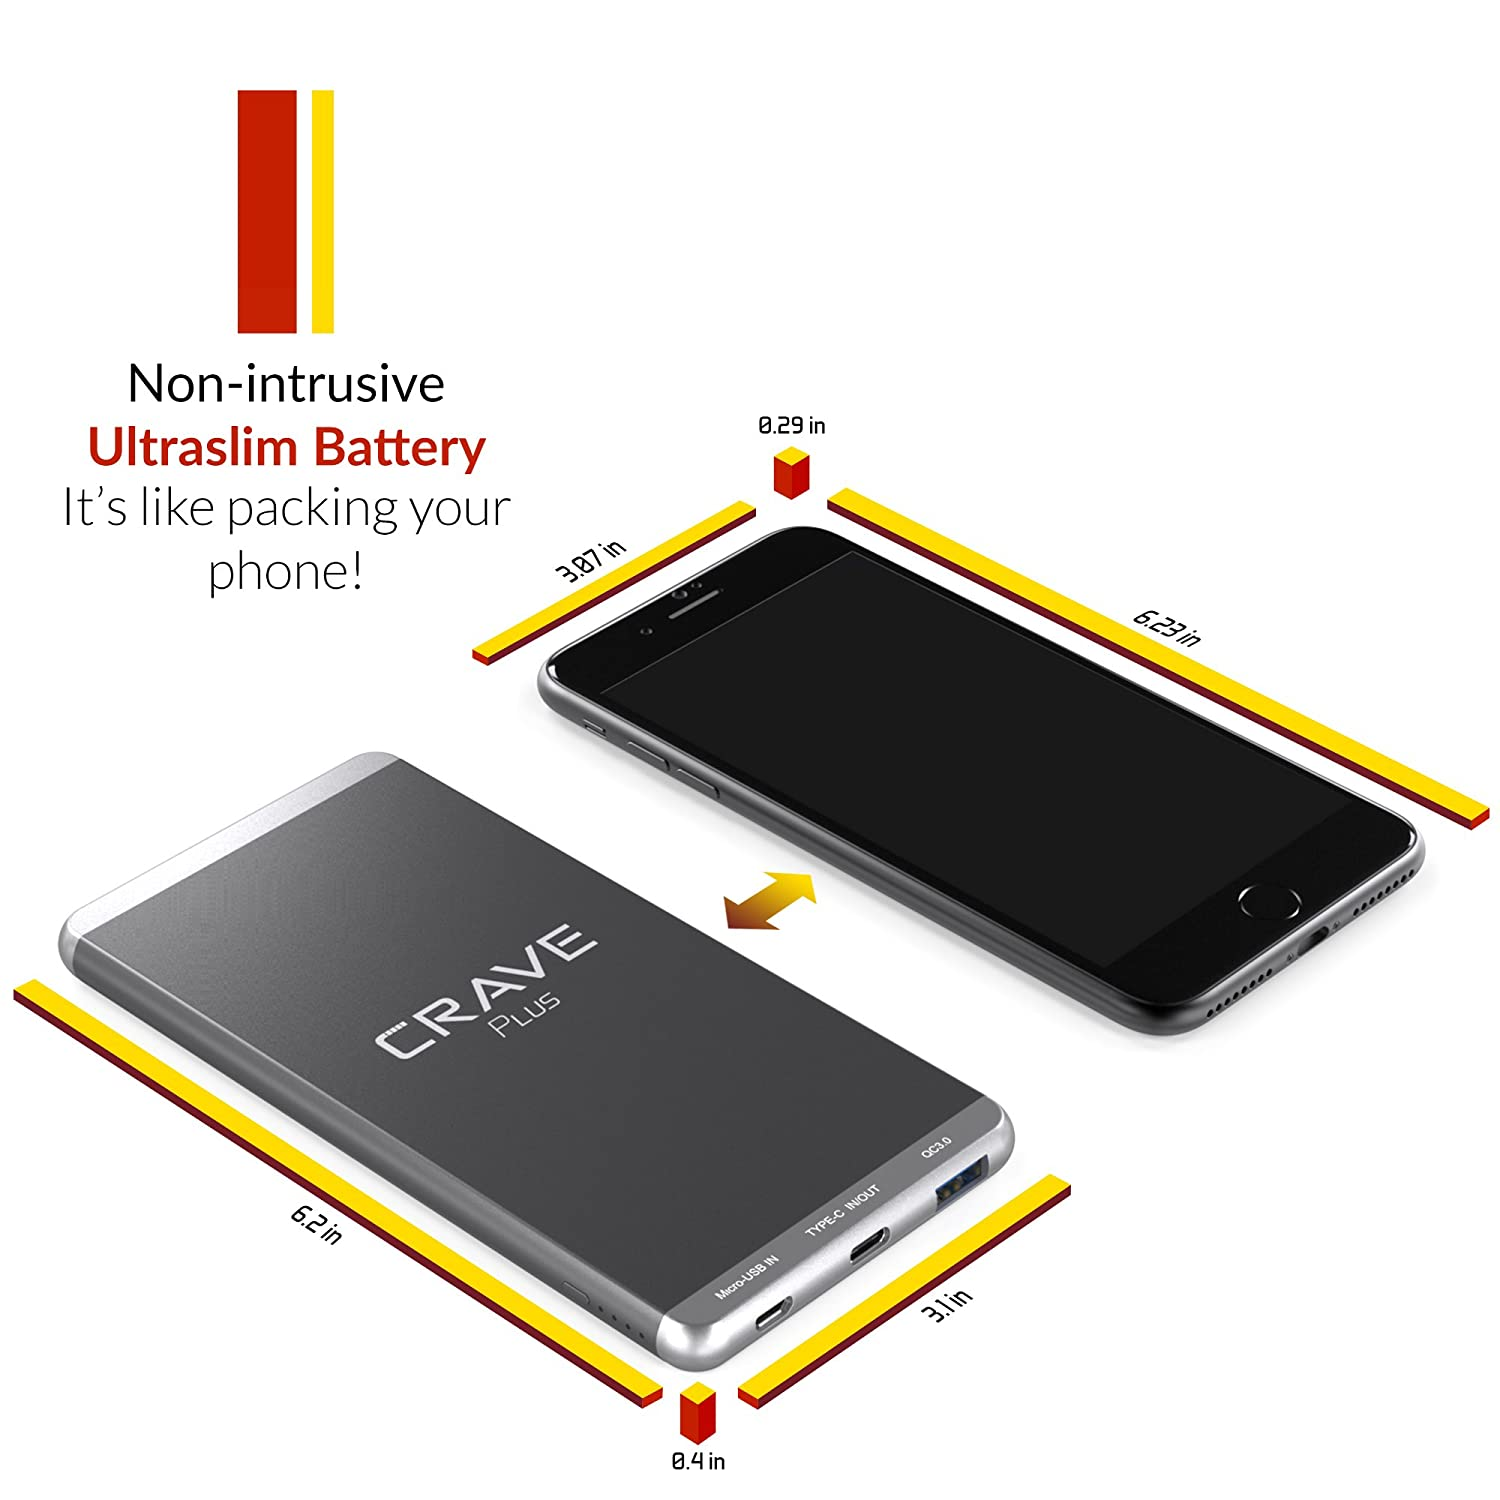 Slim Power Bank Crave Plus Aluminum Portable Charger Mobile Phone And Ipod Battery Circuit Diagram With 10000 Mah Quick Charge Qc 30 Usb Type C External Pack For Iphone Ipad